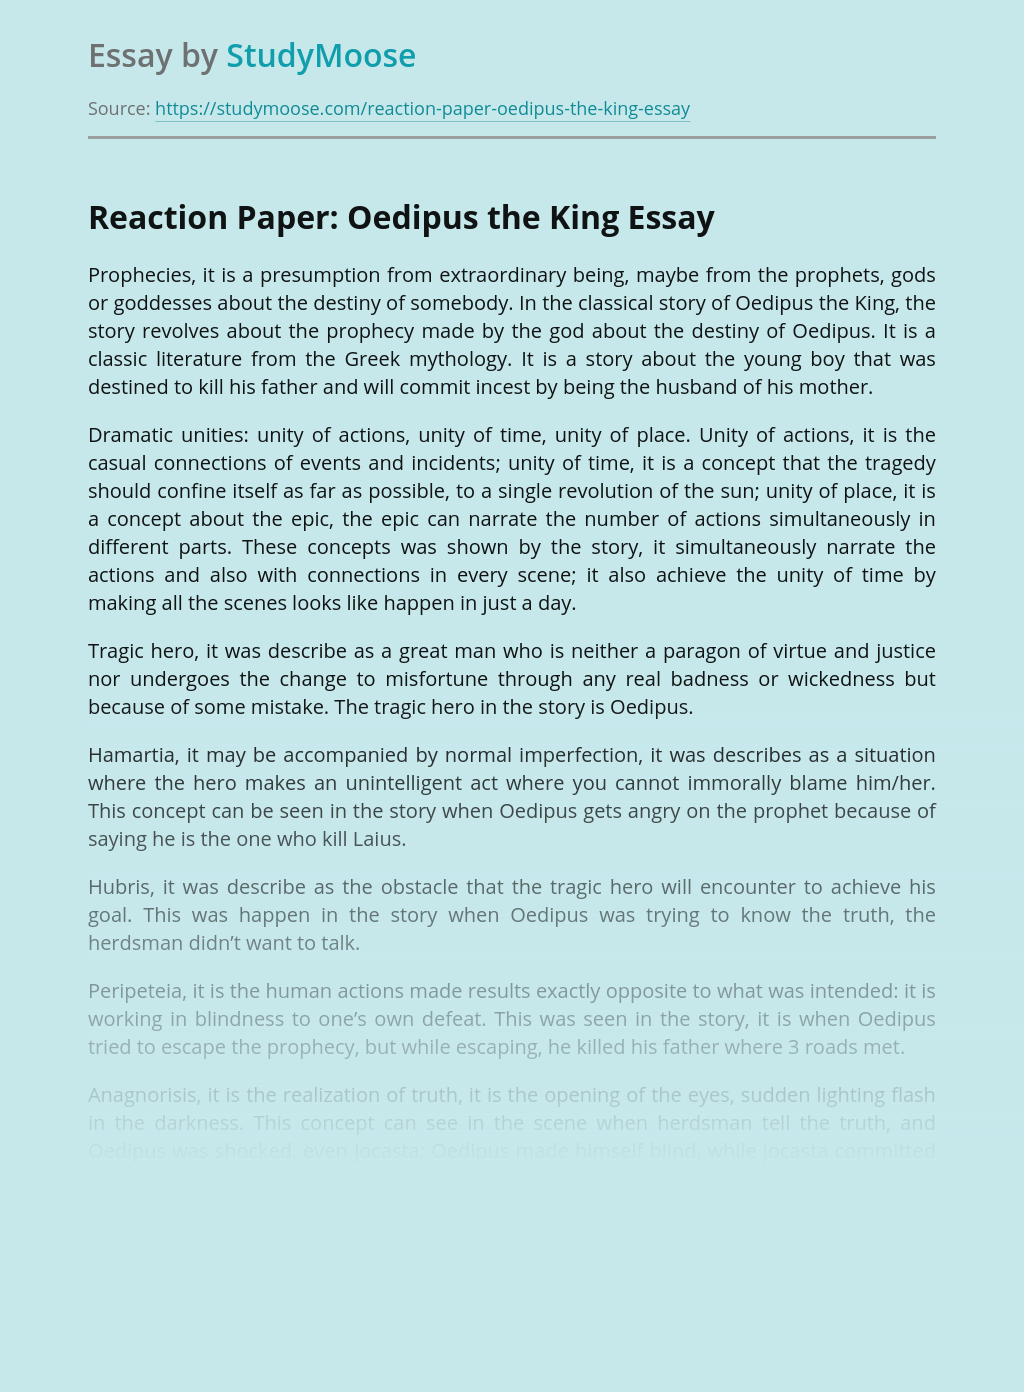 Reaction Paper: Oedipus the King